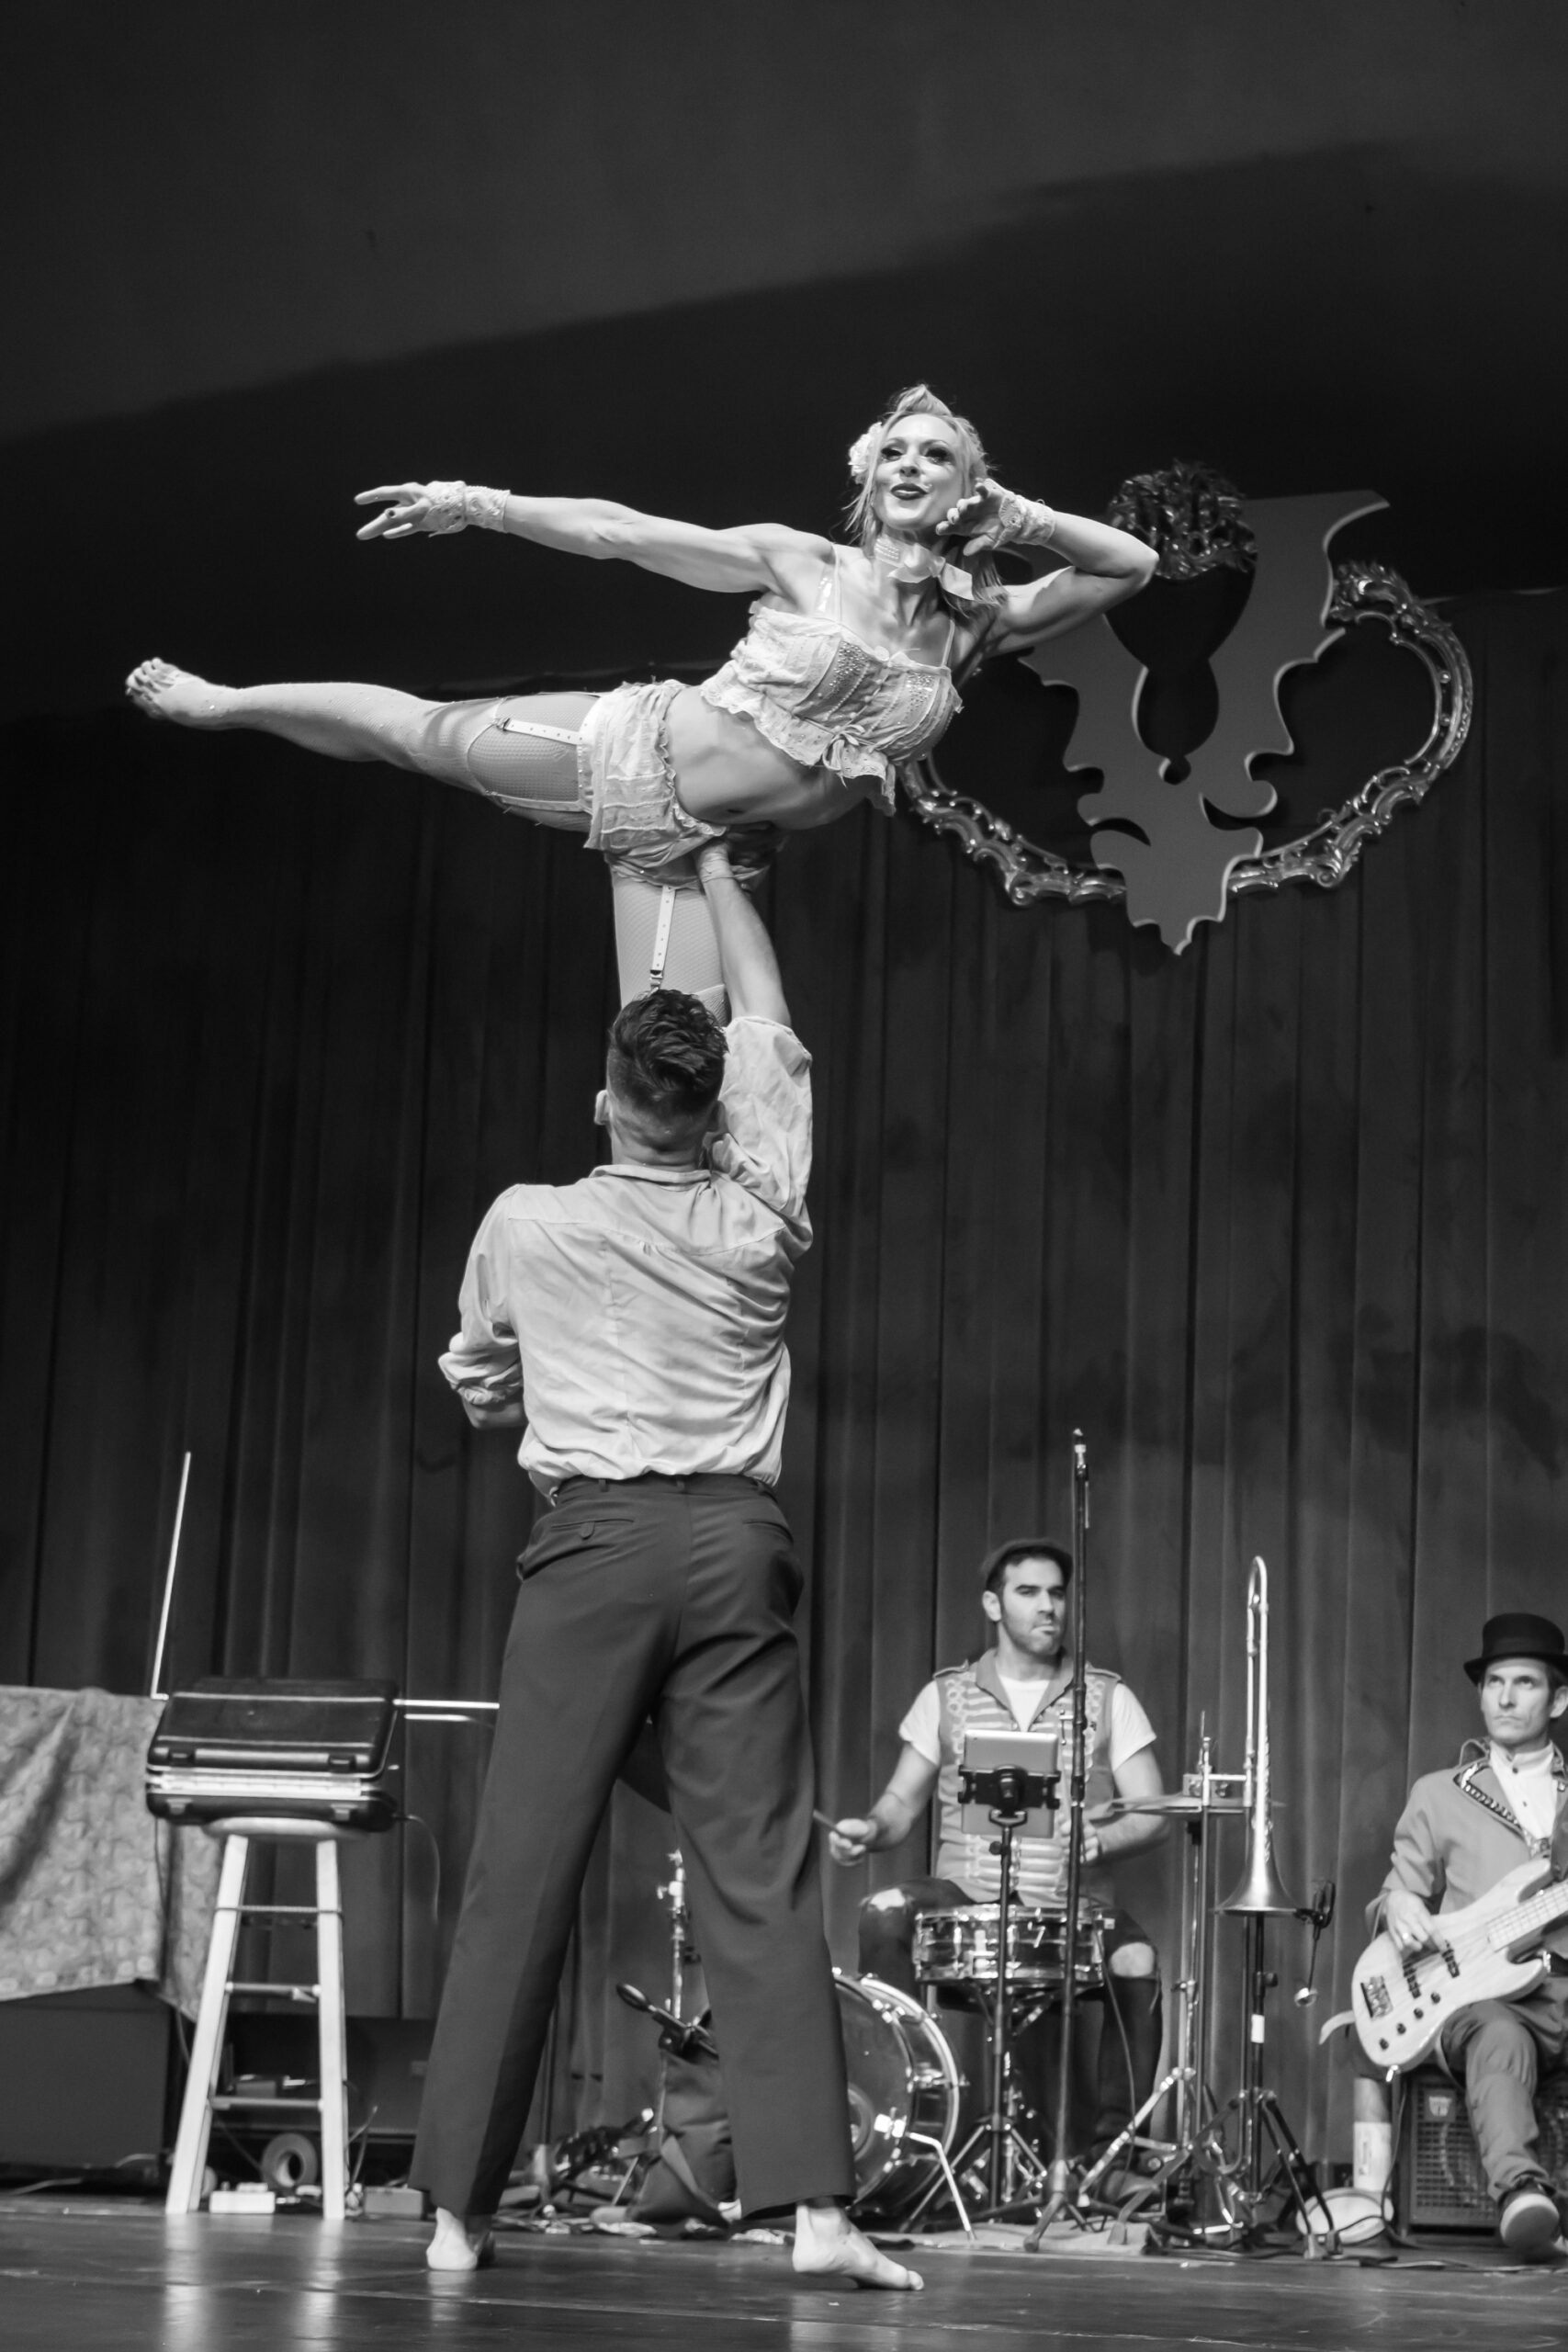 Image of Maggie Powers and Ismael Acosta performing at Vau de Vire's The Soiled Dove dinner theater Under the Tortona Big Top in Downtown Oakland